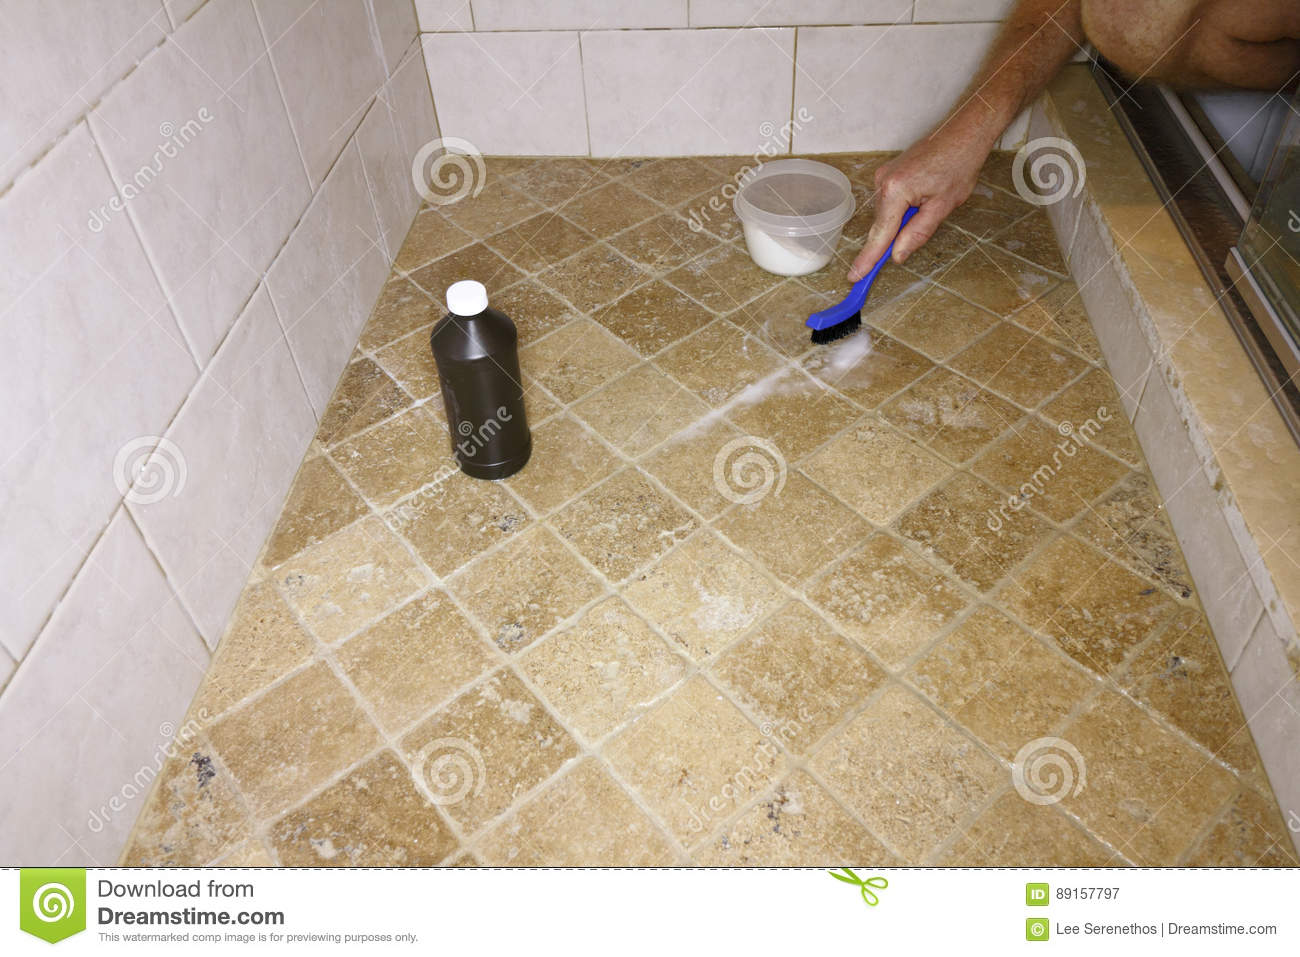 Cleaning Grout With Natural Ingredients